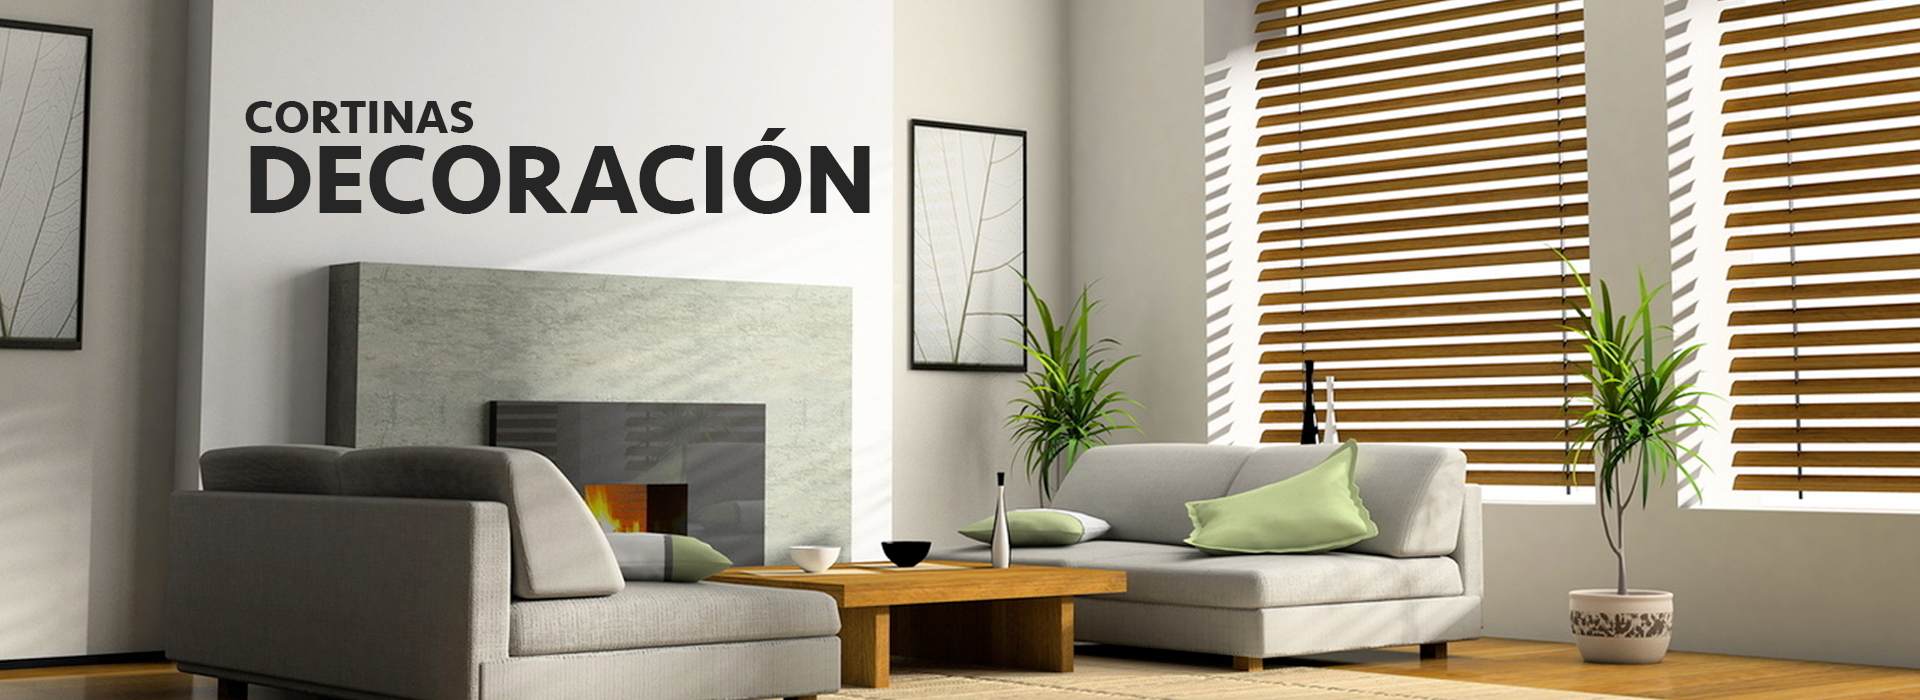 cortinas decoracion